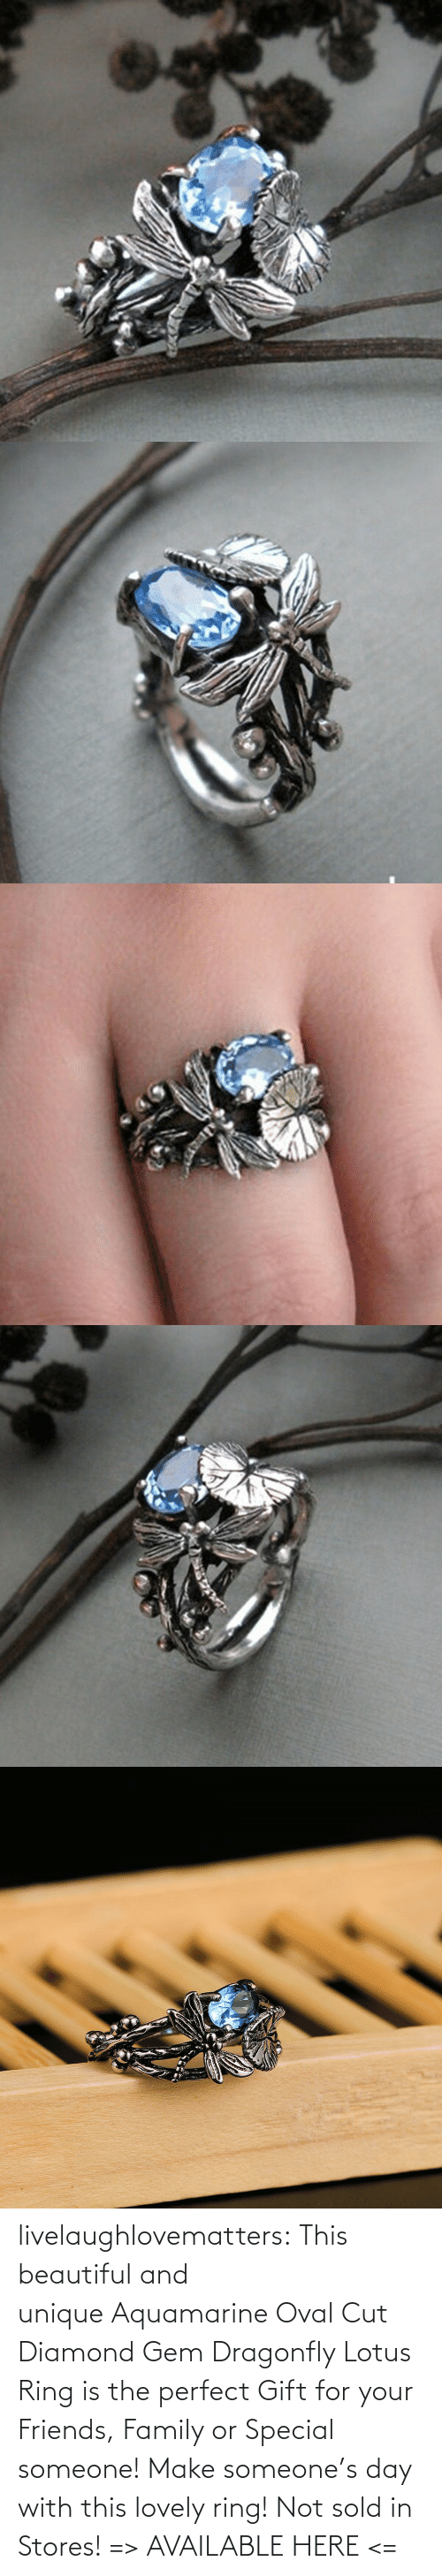 ring: livelaughlovematters: This beautiful and unique Aquamarine Oval Cut Diamond Gem Dragonfly Lotus Ring is the perfect Gift for your Friends, Family or Special someone! Make someone's day with this lovely ring! Not sold in Stores! => AVAILABLE HERE <=